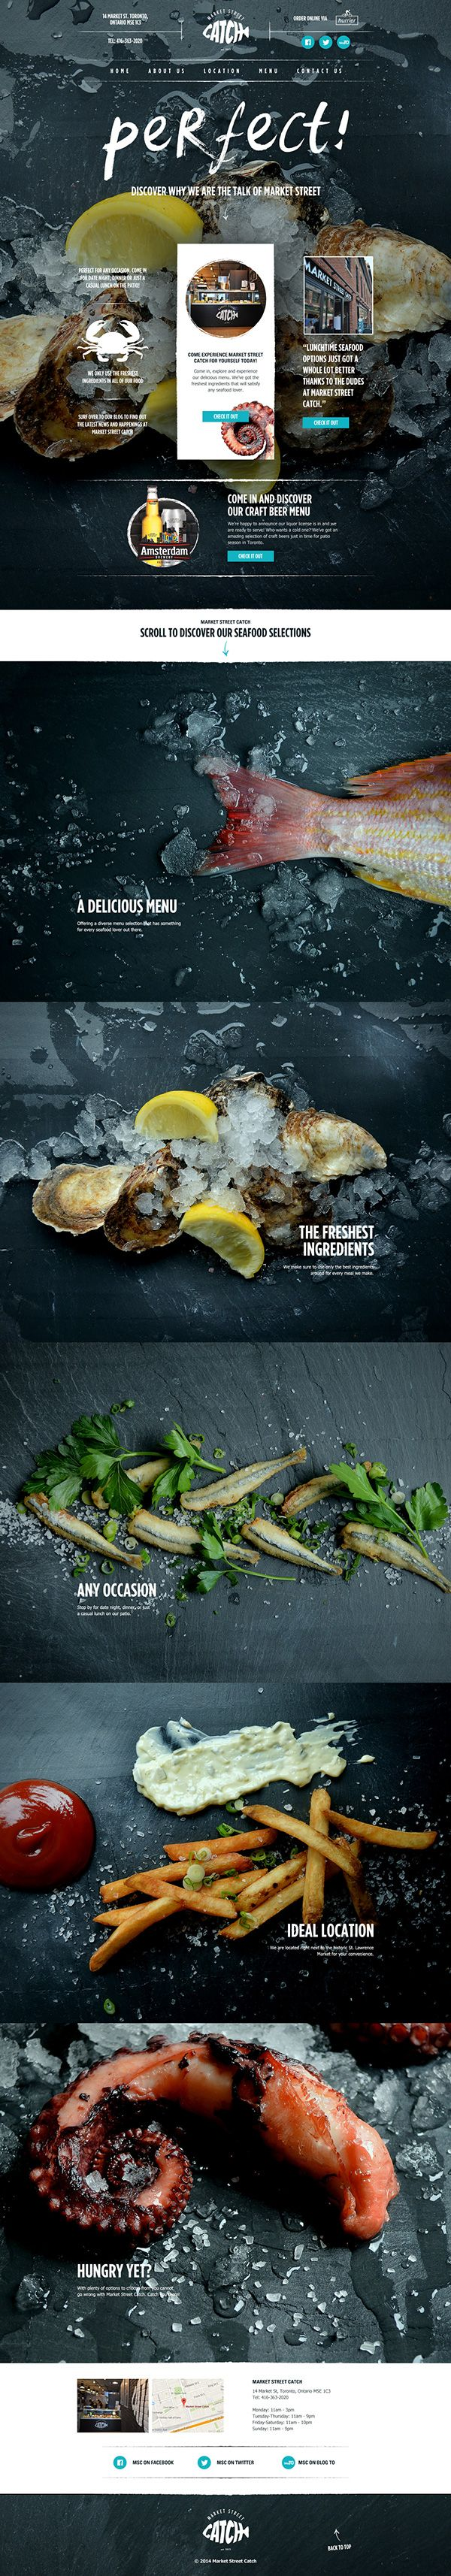 Website for Market Street Catch, a seafood restaurant in Toronto, Ontario. Réalité des images / cru / vraie nourriture